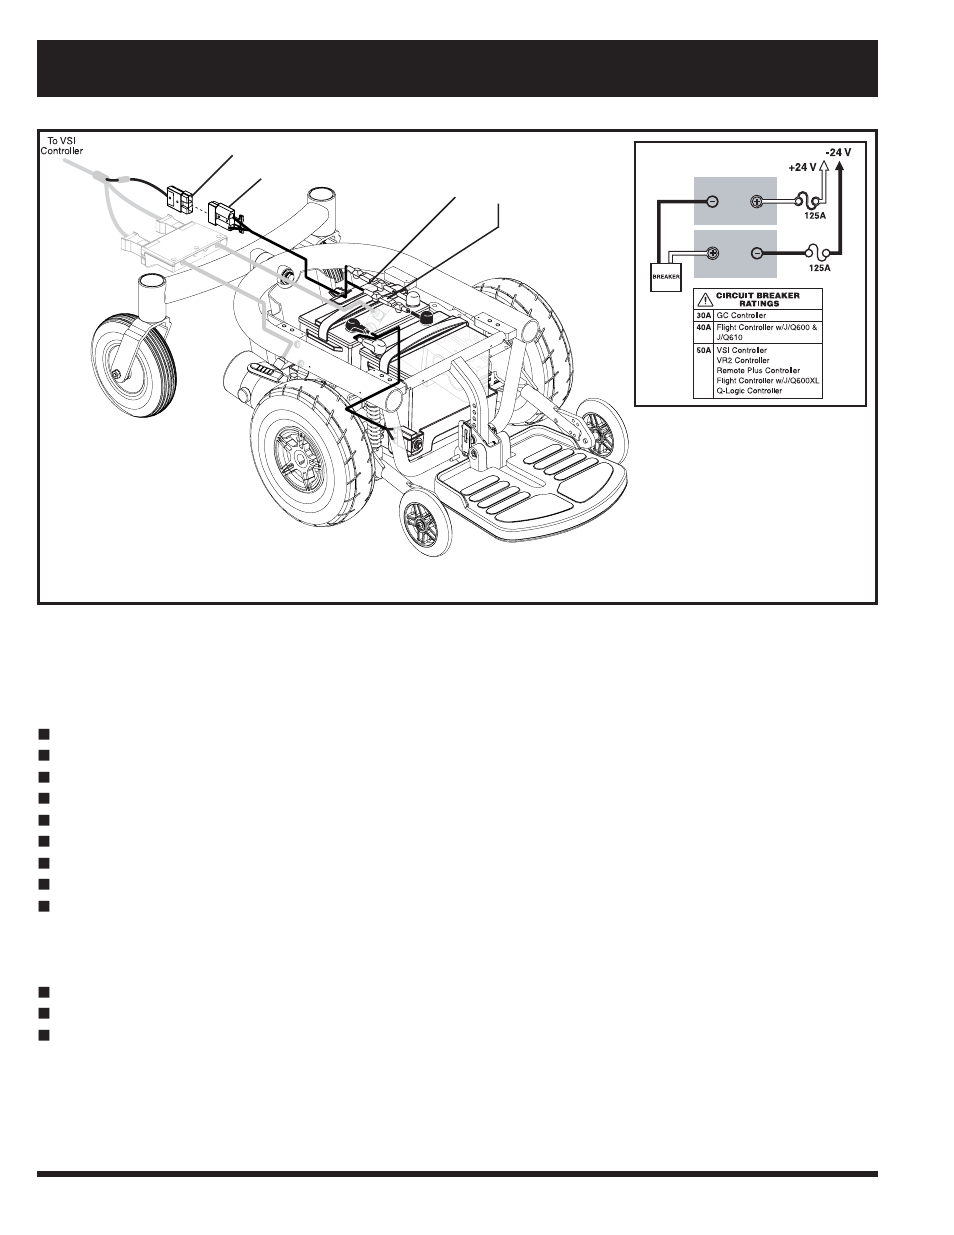 pride mobility jazzy 1103 page40 pride mobility jazzy 1103 user manual page 40 47 also for jazzy 1103 ultra wiring diagram at soozxer.org